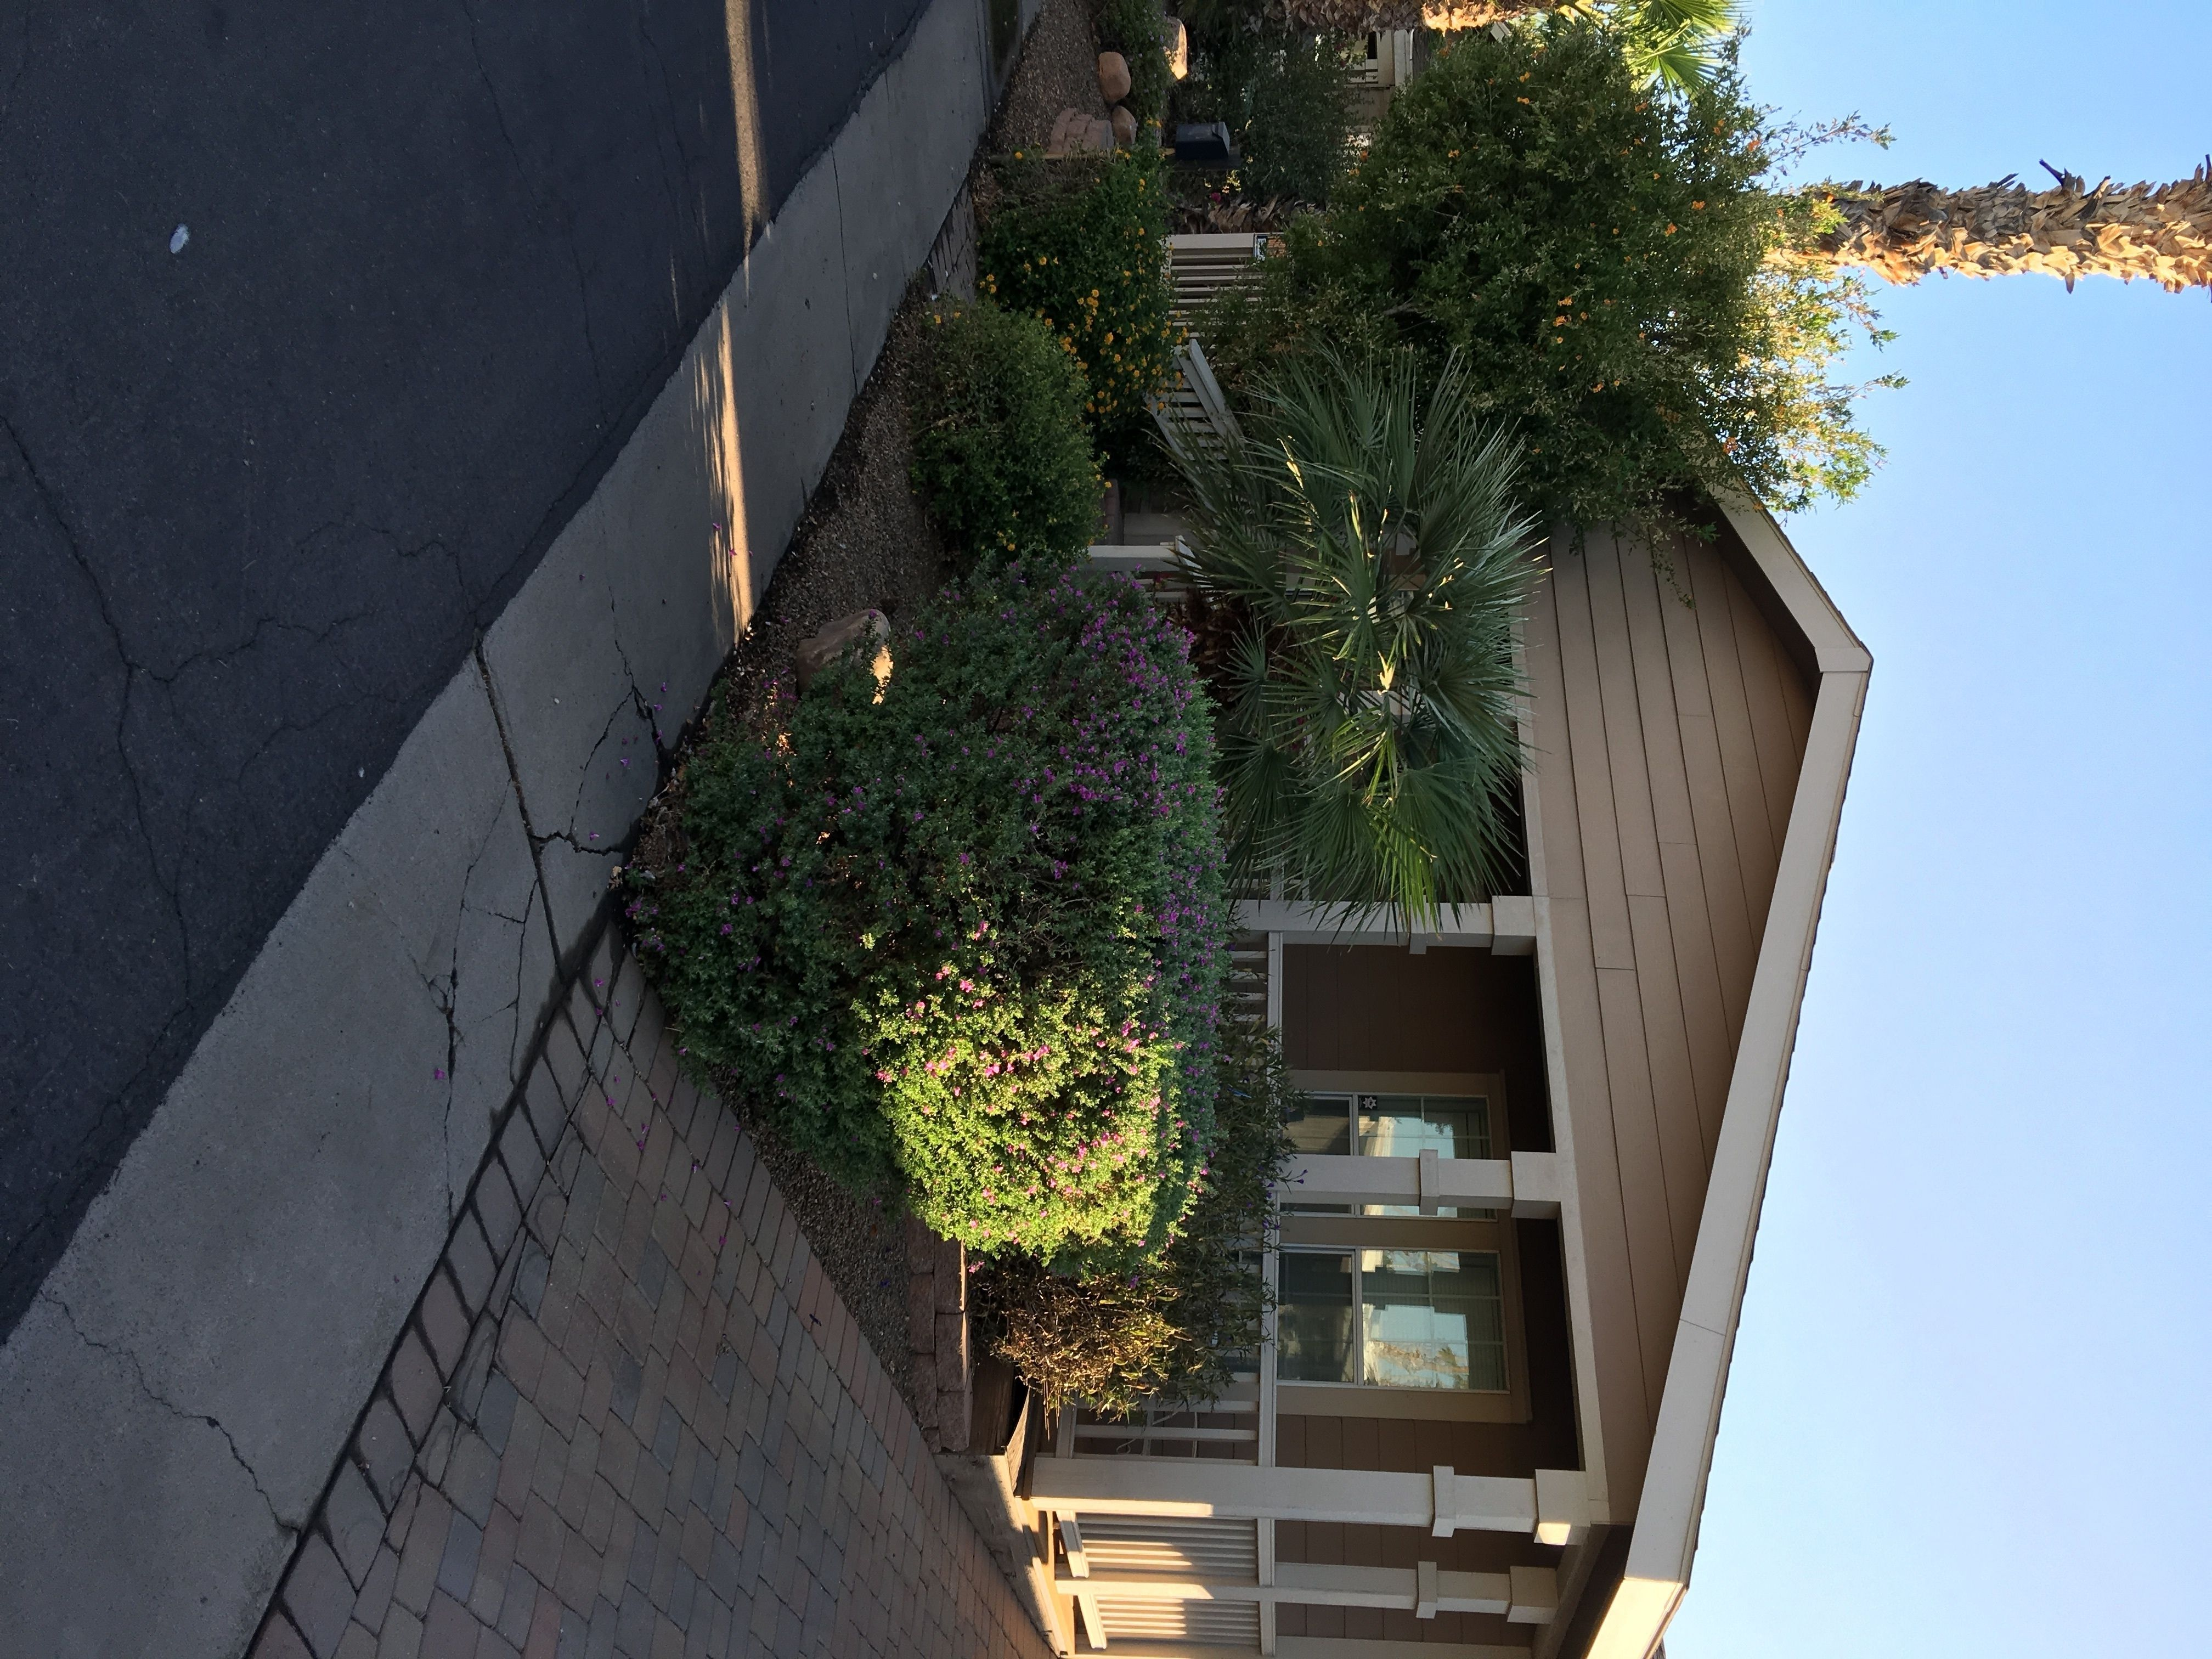 2007 Cavco Mobile Manufactured Home In Glendale Az Via Mhvillage Com Mobile Homes For Sale Ideal Home Manufactured Home